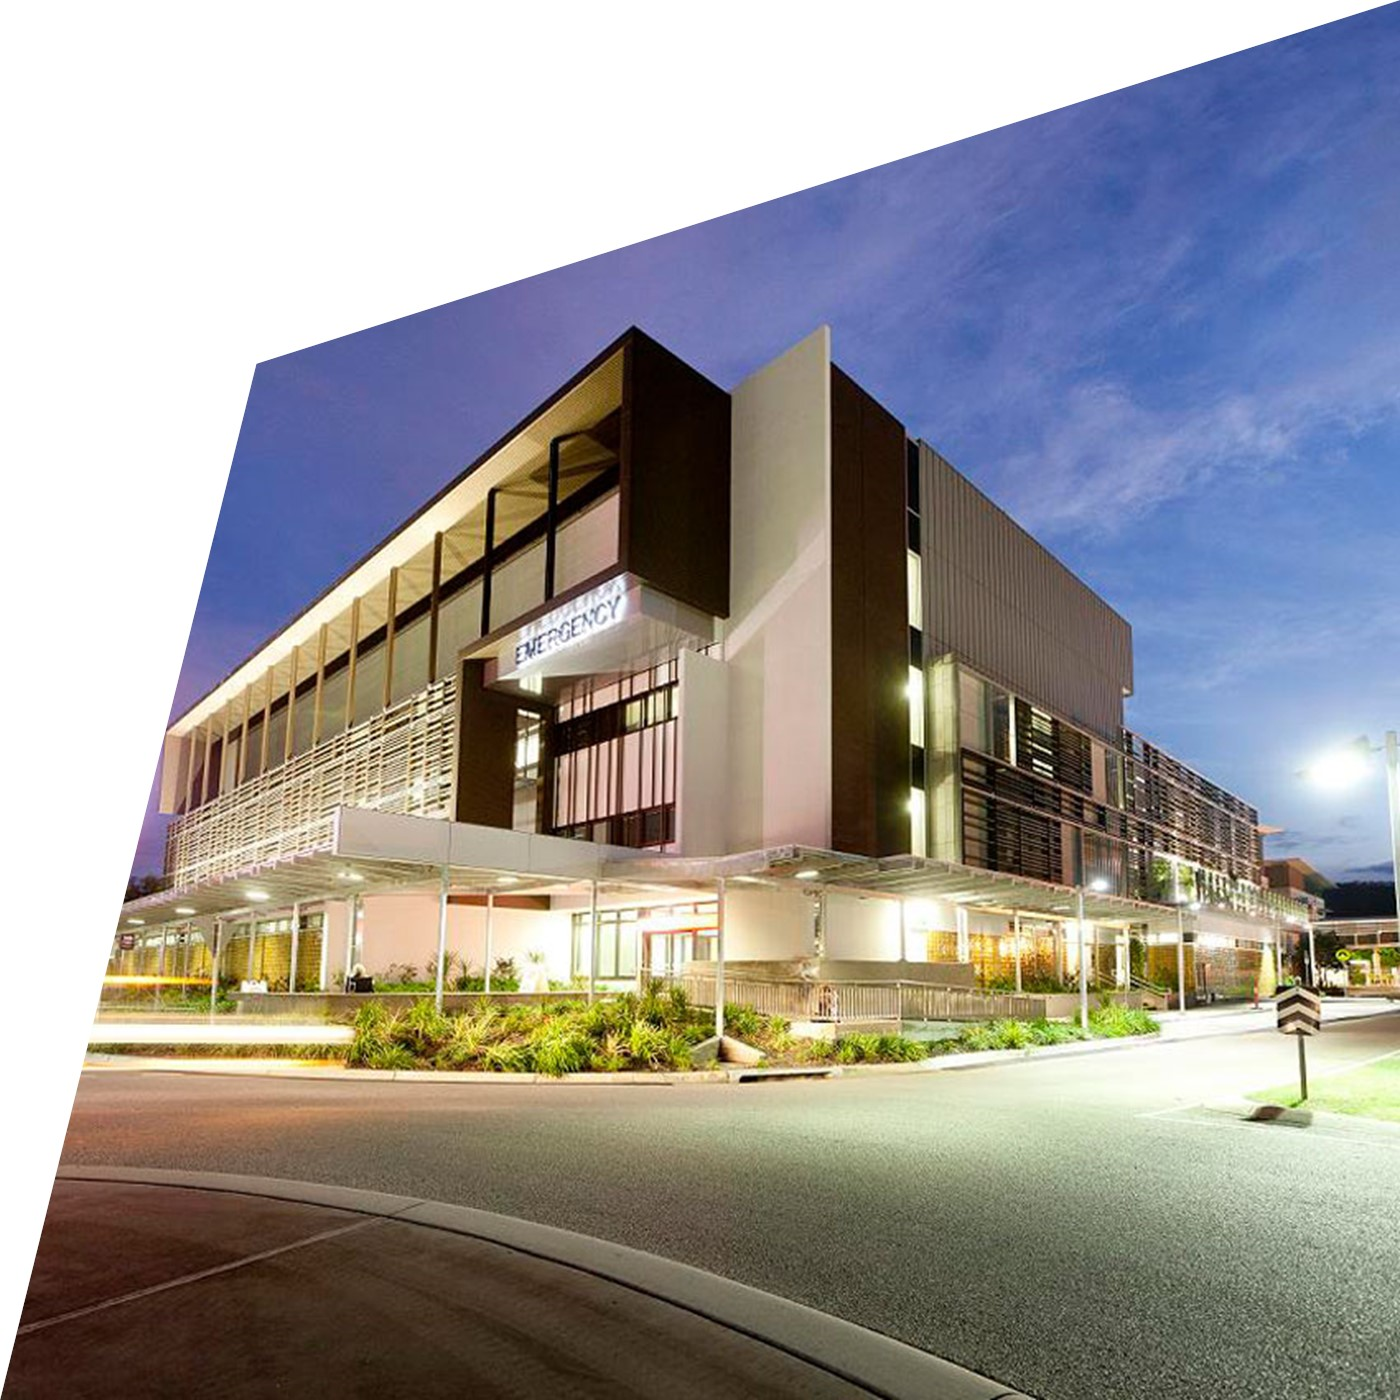 Townsville Hospital, QLD